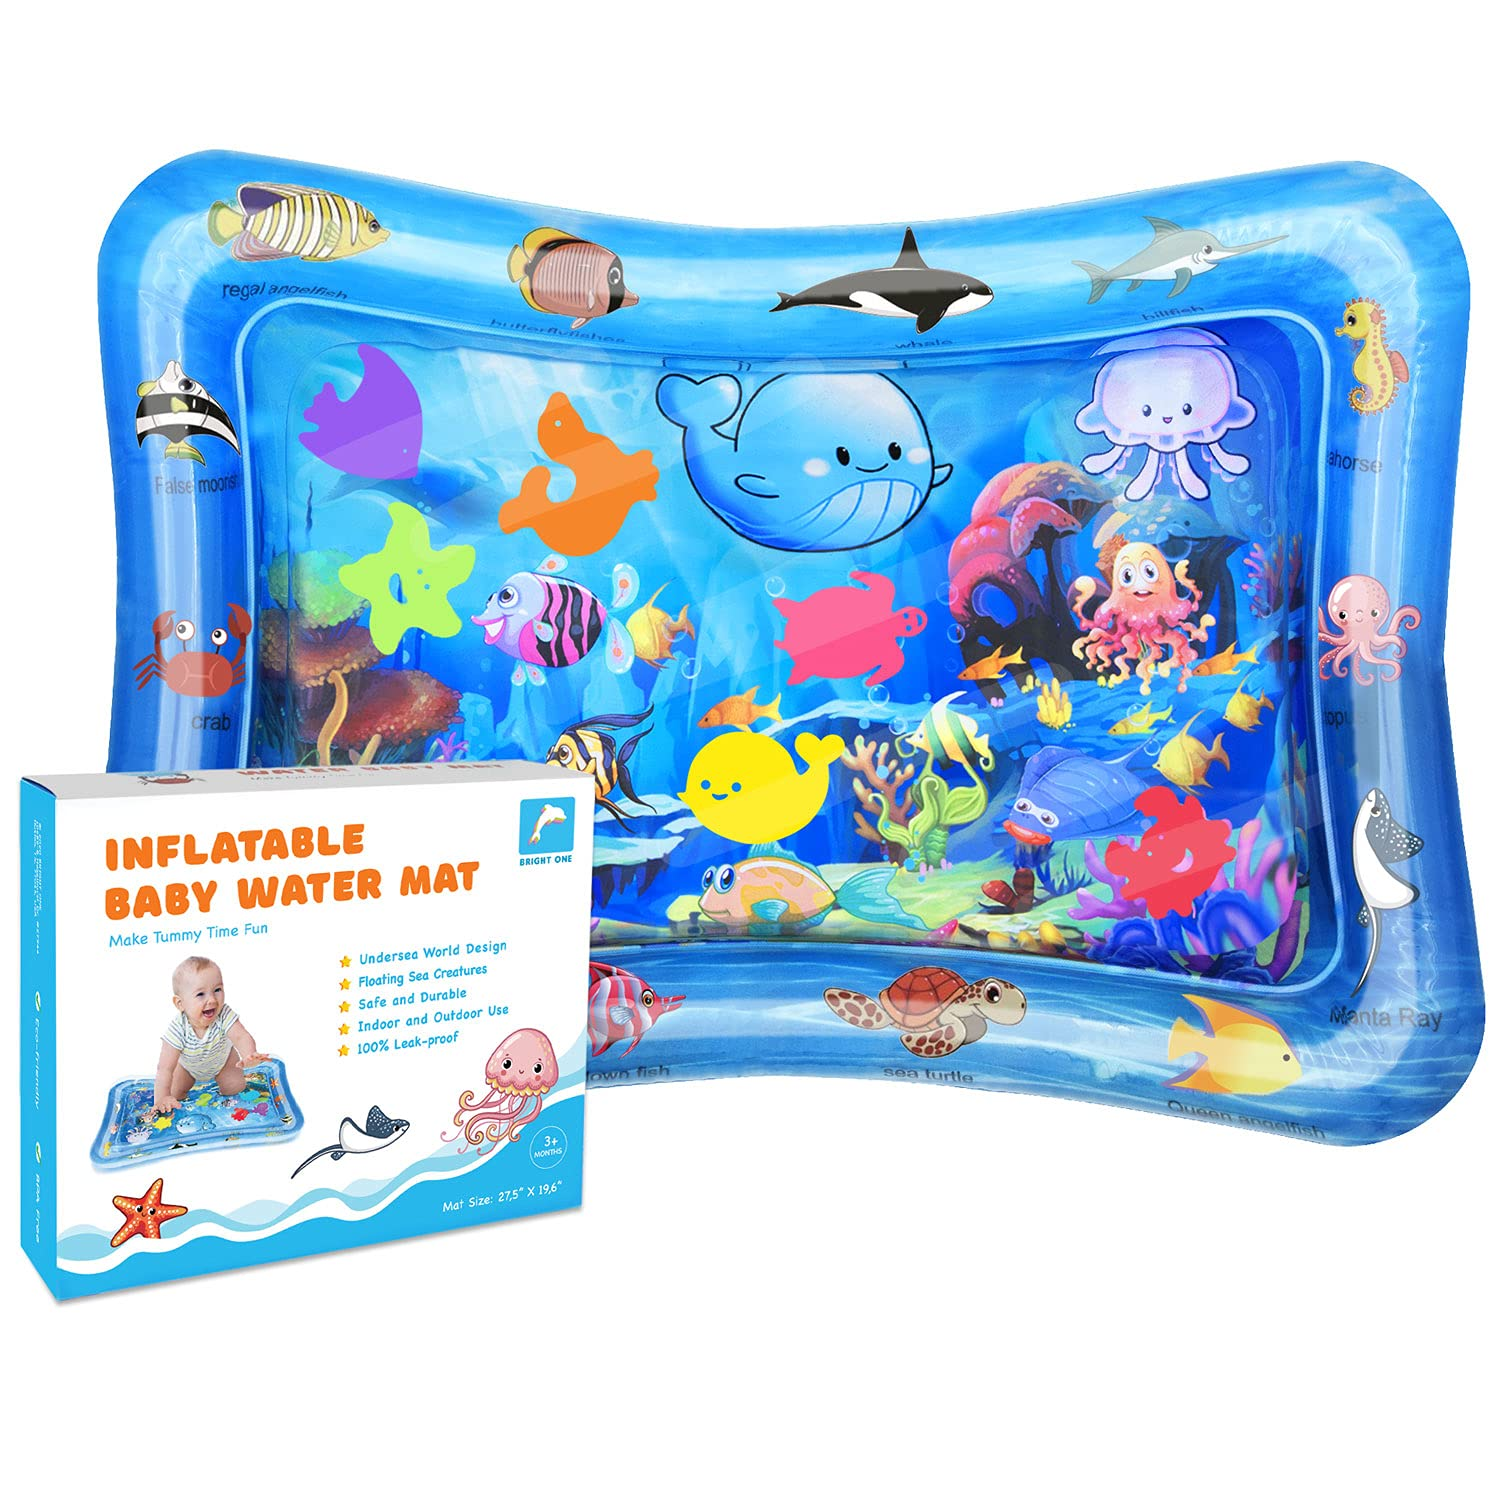 shopping Tummy Time Water Play Mat - for Inflatable Infants 6 3 2021 model